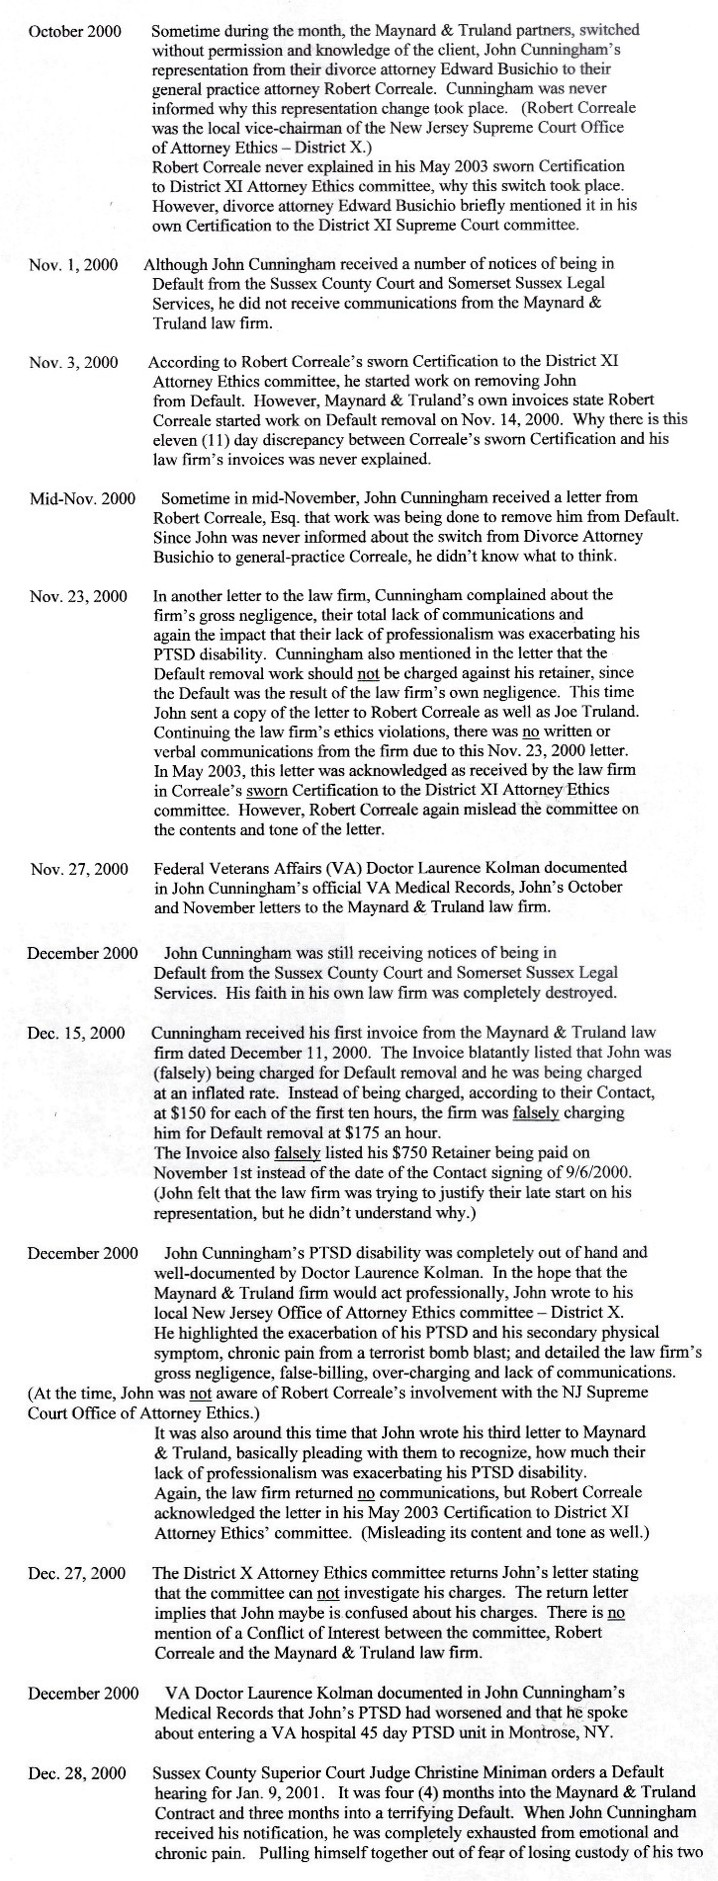 chronology_of_events_pages_3_4_part_1.jpg